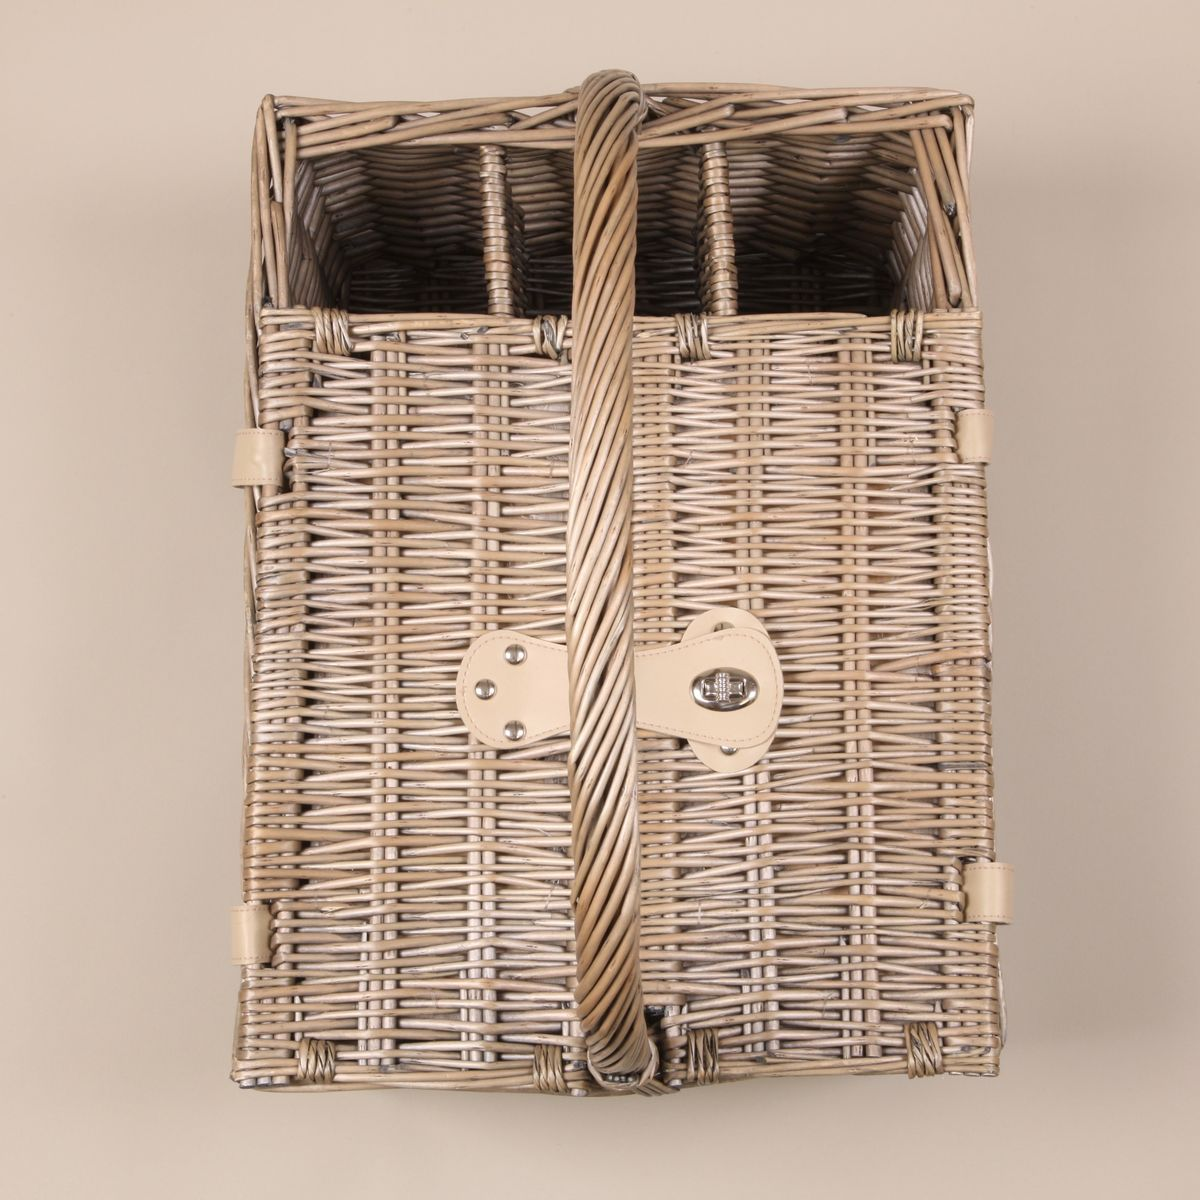 Personalised Four Person Picnic Basket - FREE GIFT WRAP & UK DELIVERY - product images  of